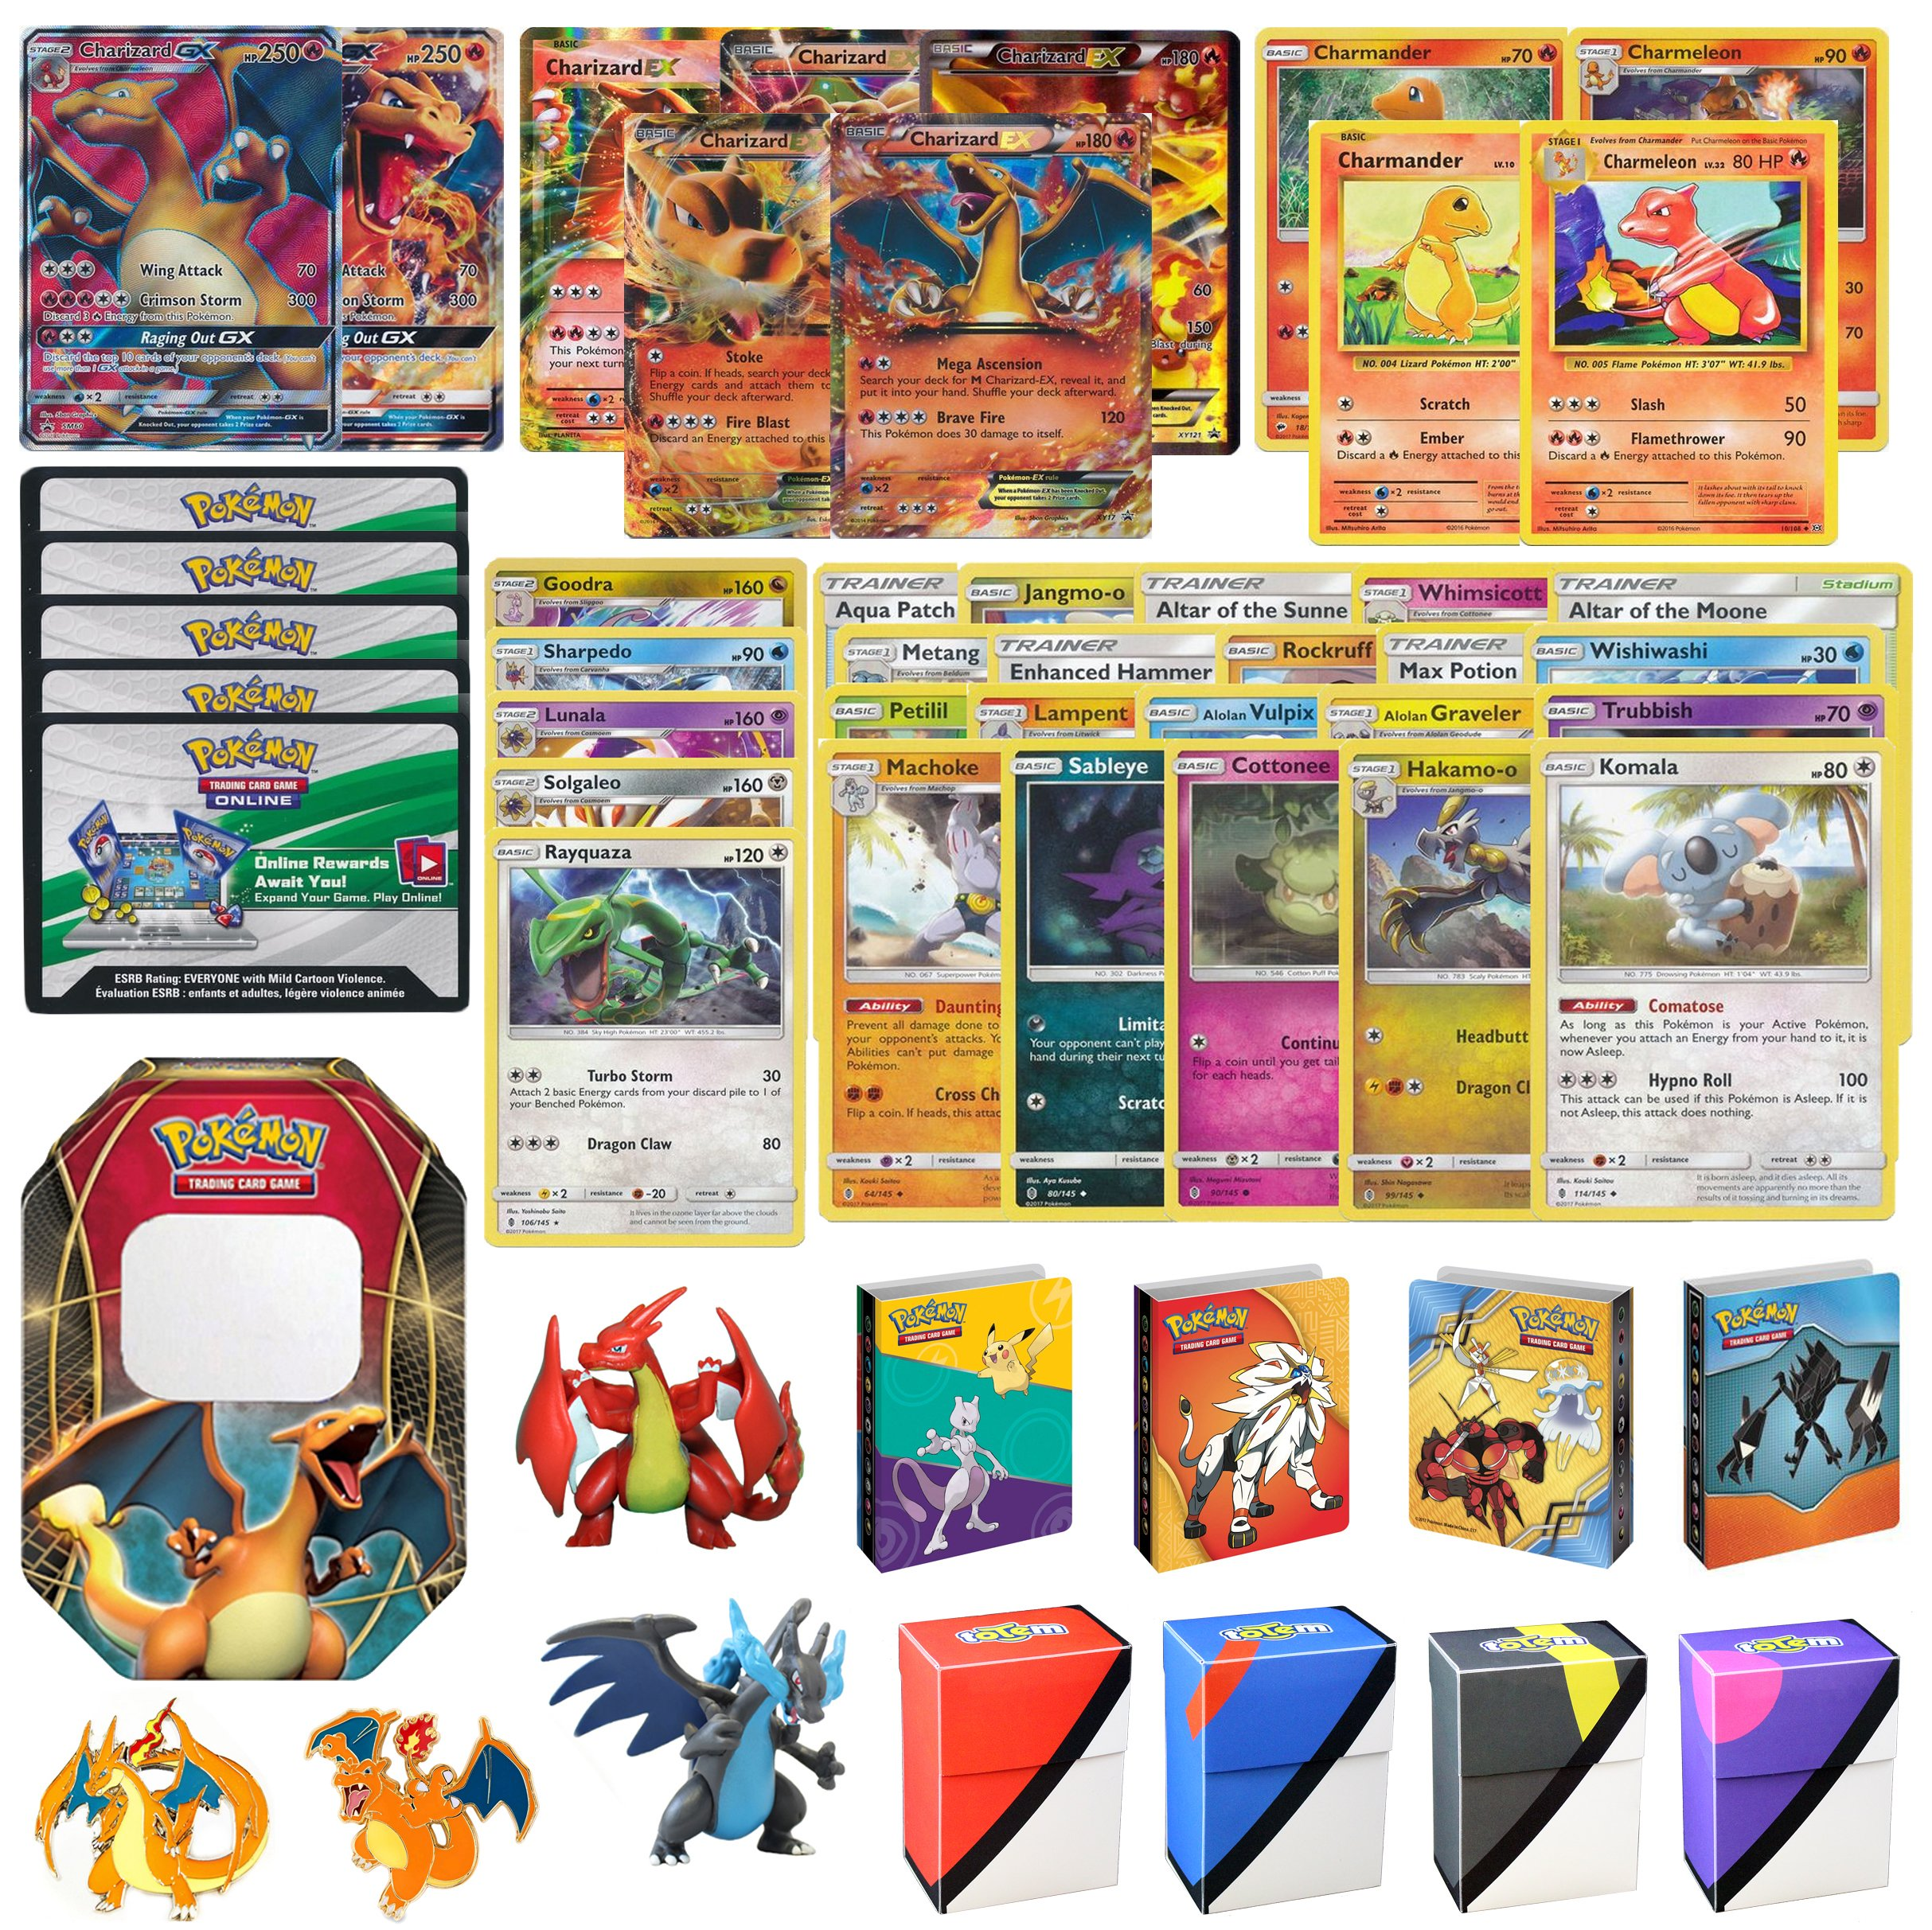 Charizard GX Premium Collection with 1 CHARIZARD GX AND 1 CHARIZARD EX GUARANTEED!